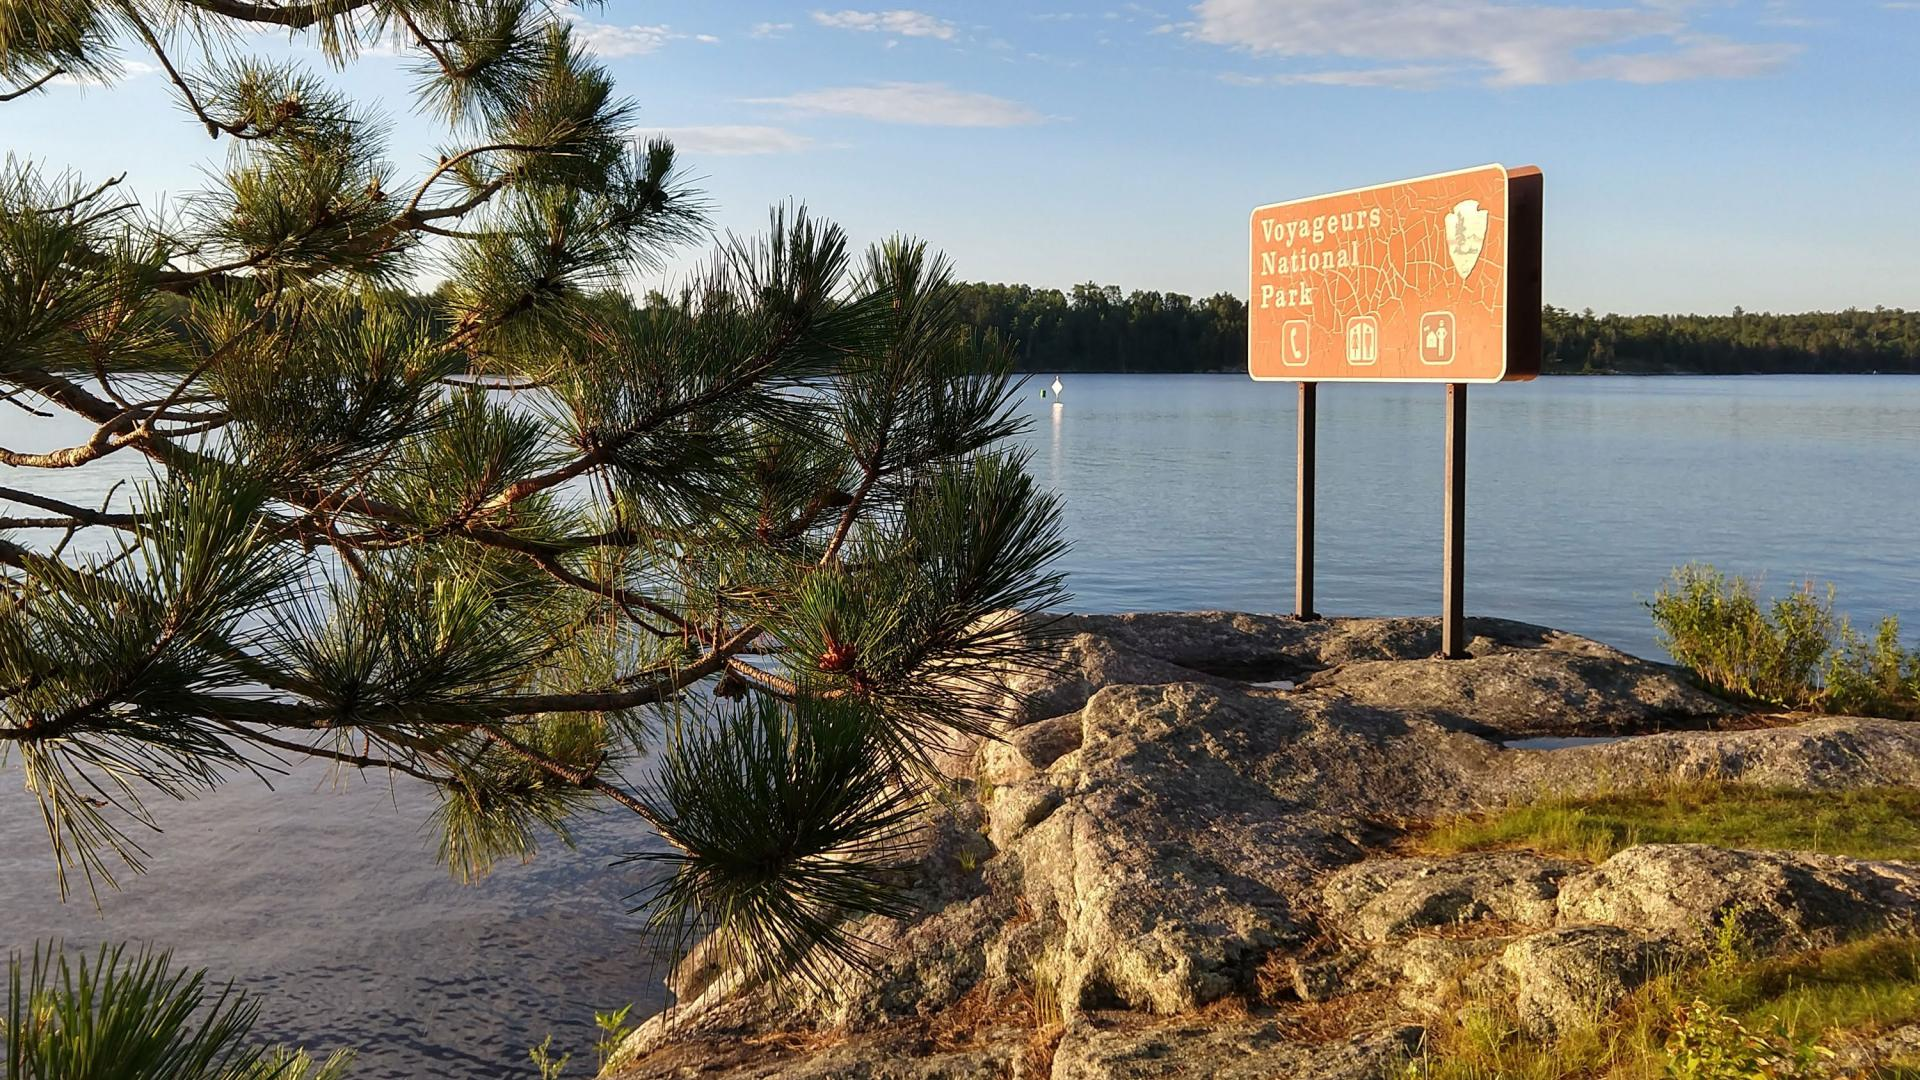 voyageurs national park sign